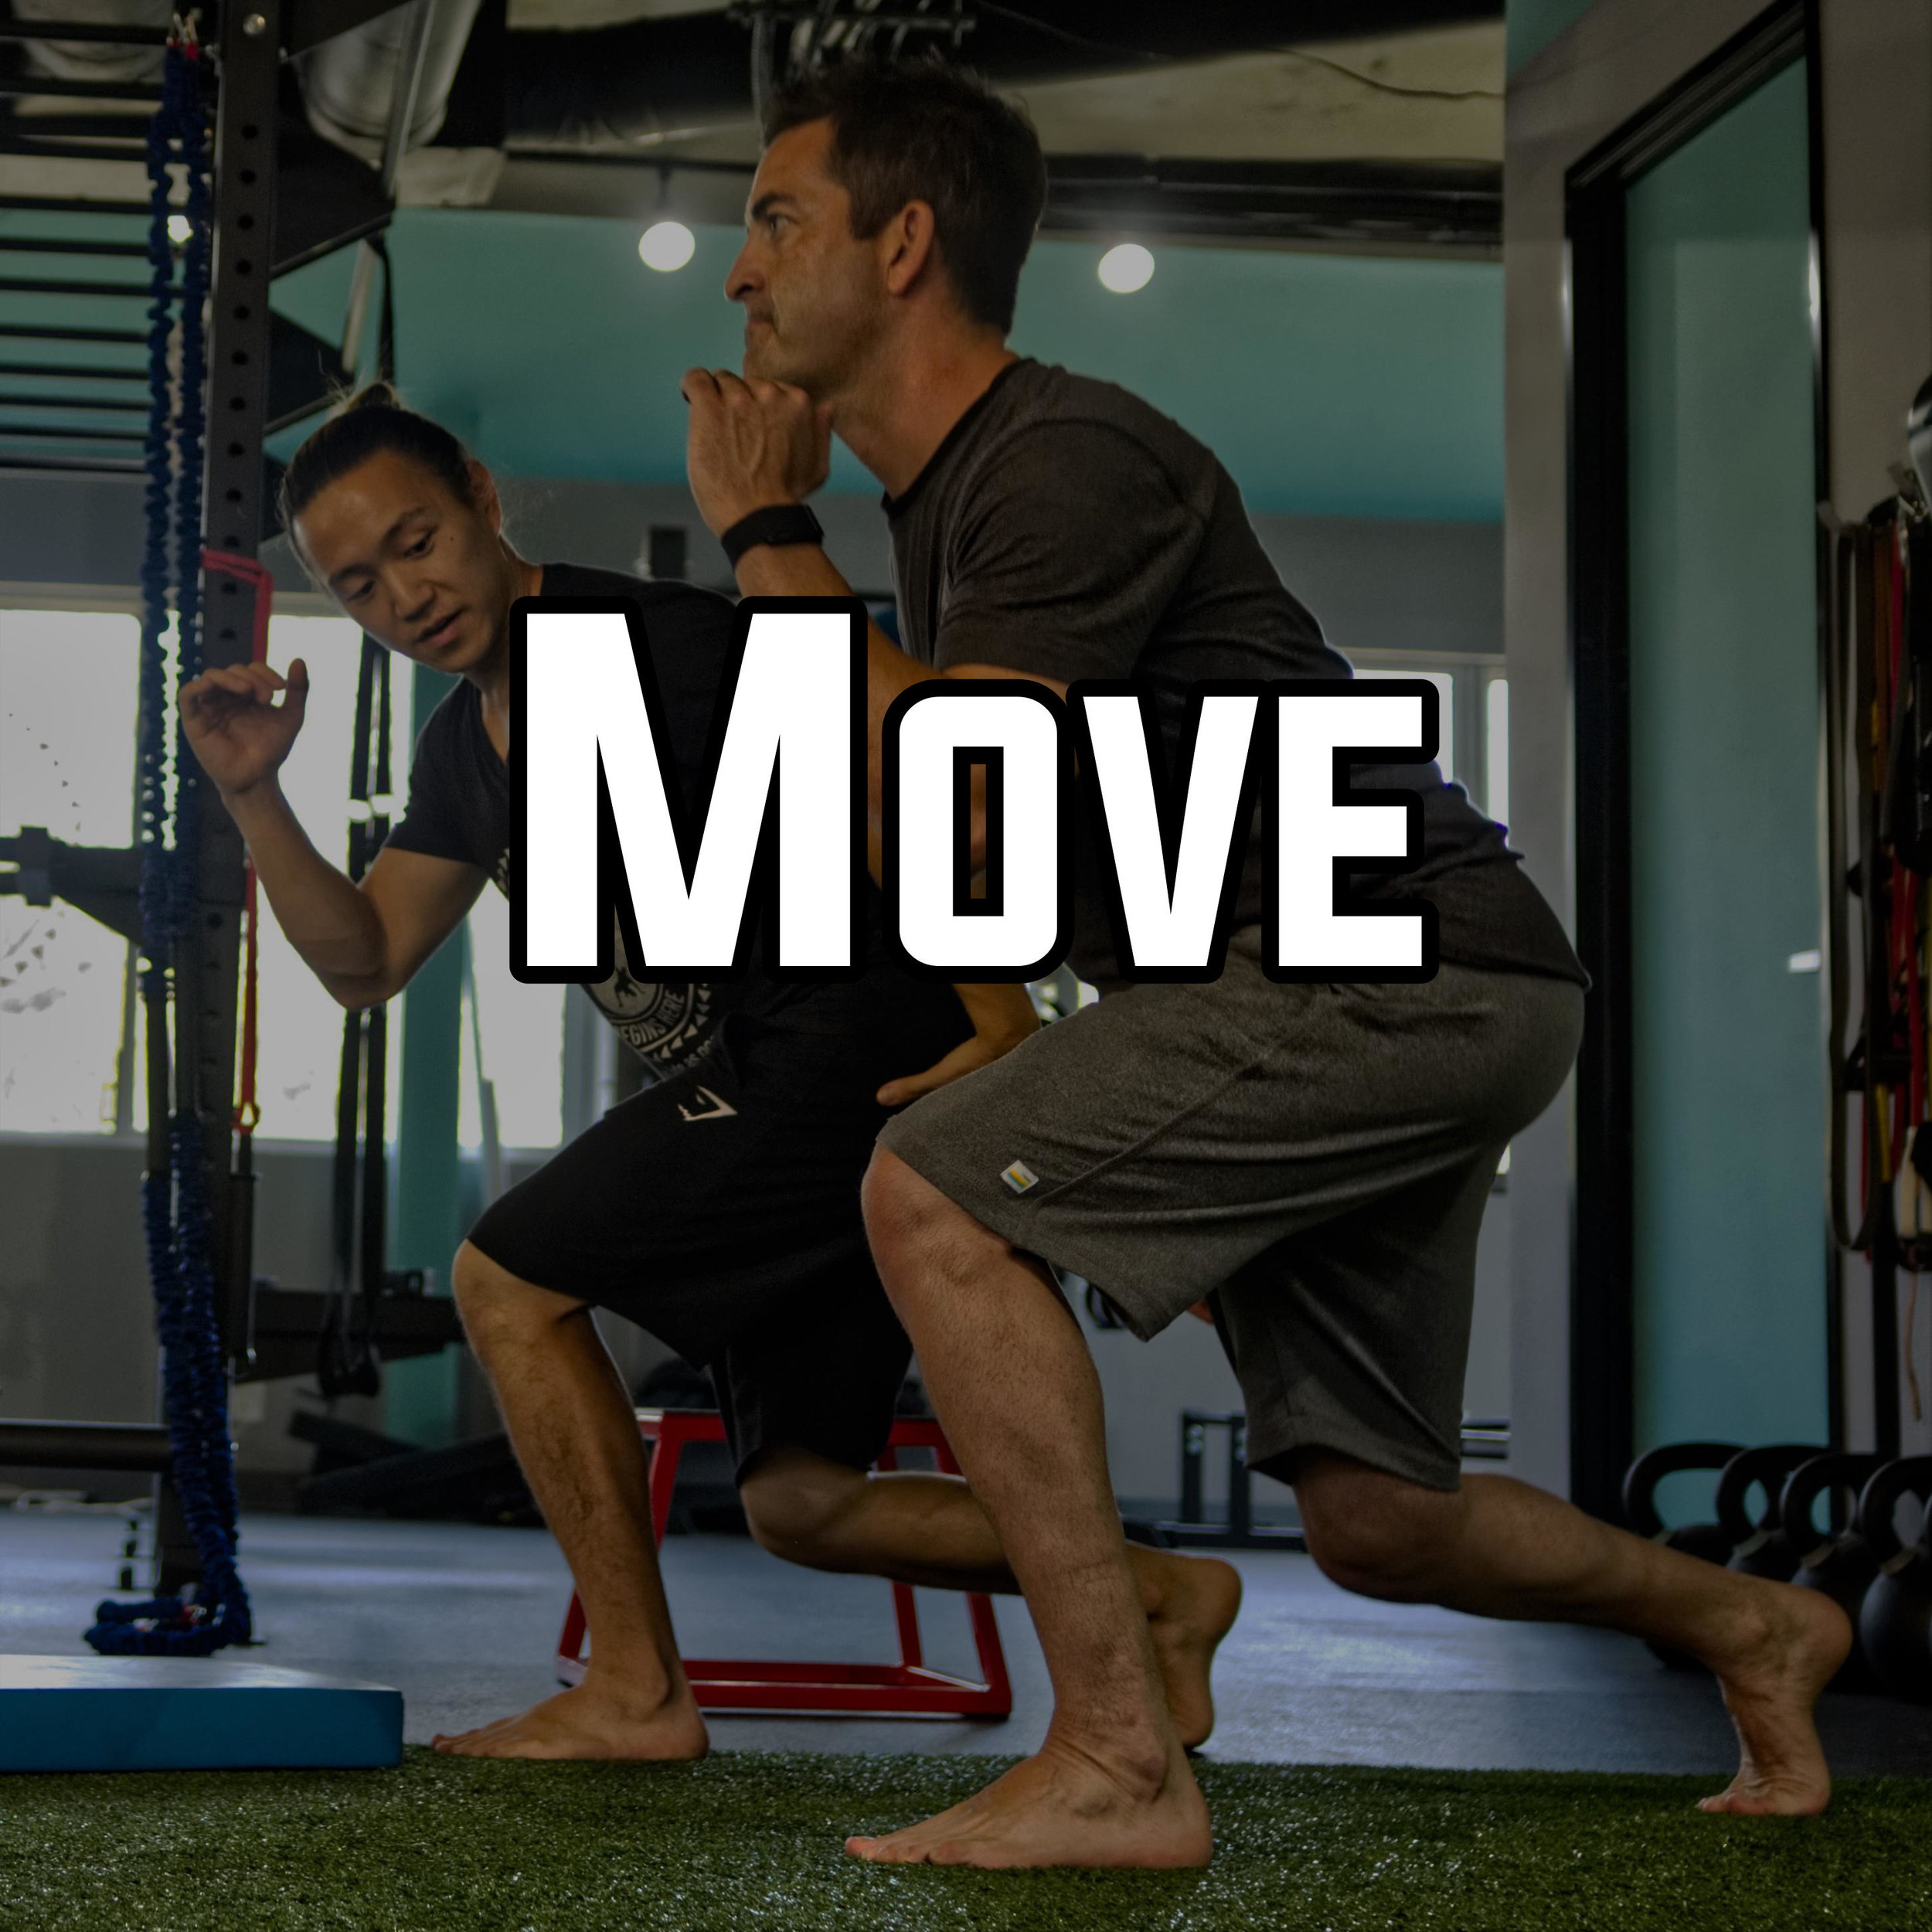 The workouts begin. Starting with the fundamental movements of Push, Pull, Squat, Hinge, Carry, Rotations/Anti-rotations. These are the fundamentals we help you fine-tune and make sure you're utilizing all the right muscles to do the correct movements.